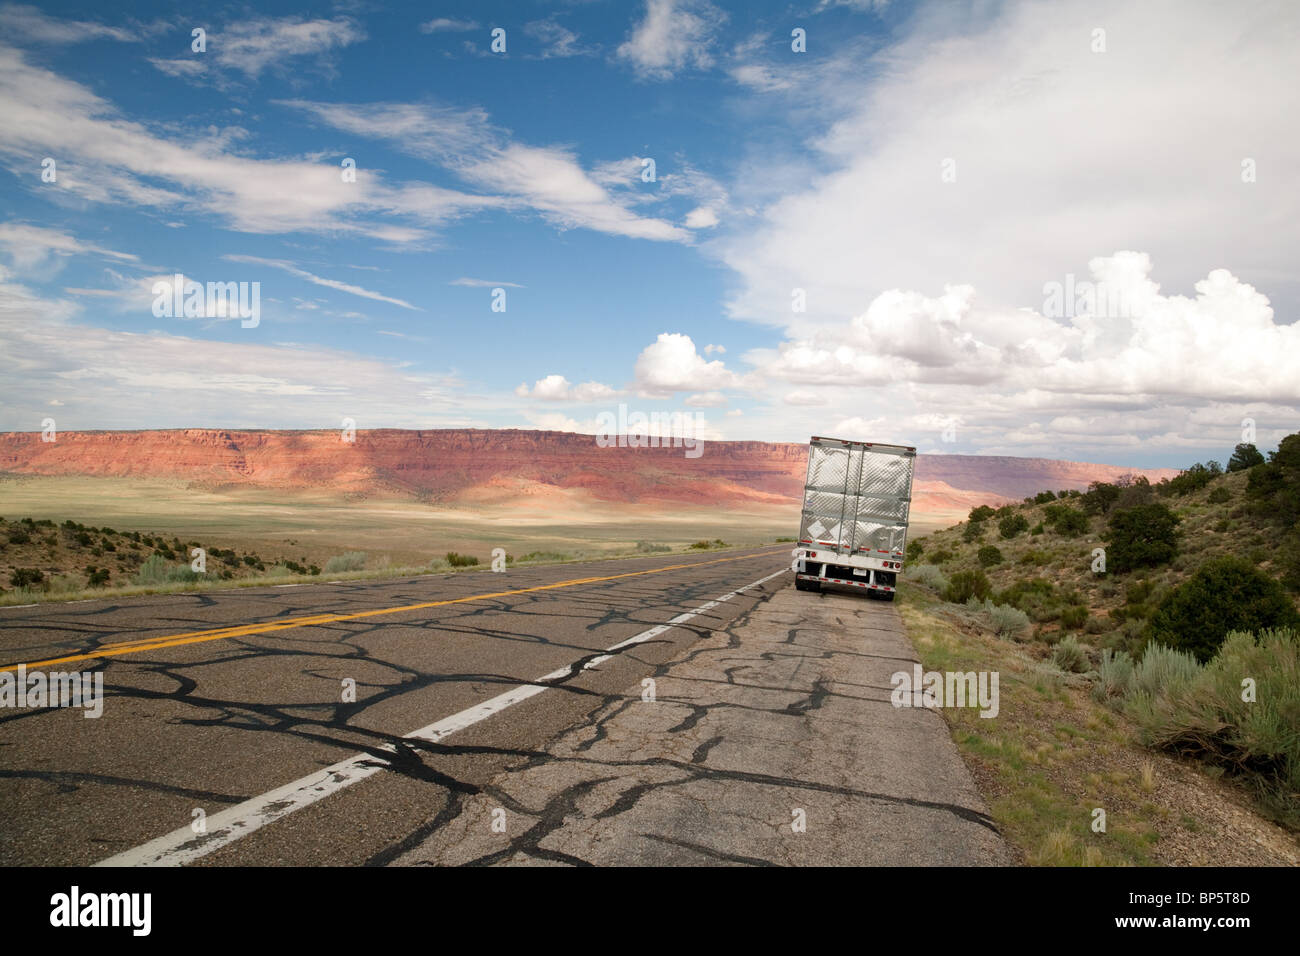 A lorry parked on the side of Highway 89, The Vermilion Cliffs, Arizona, USA - Stock Image